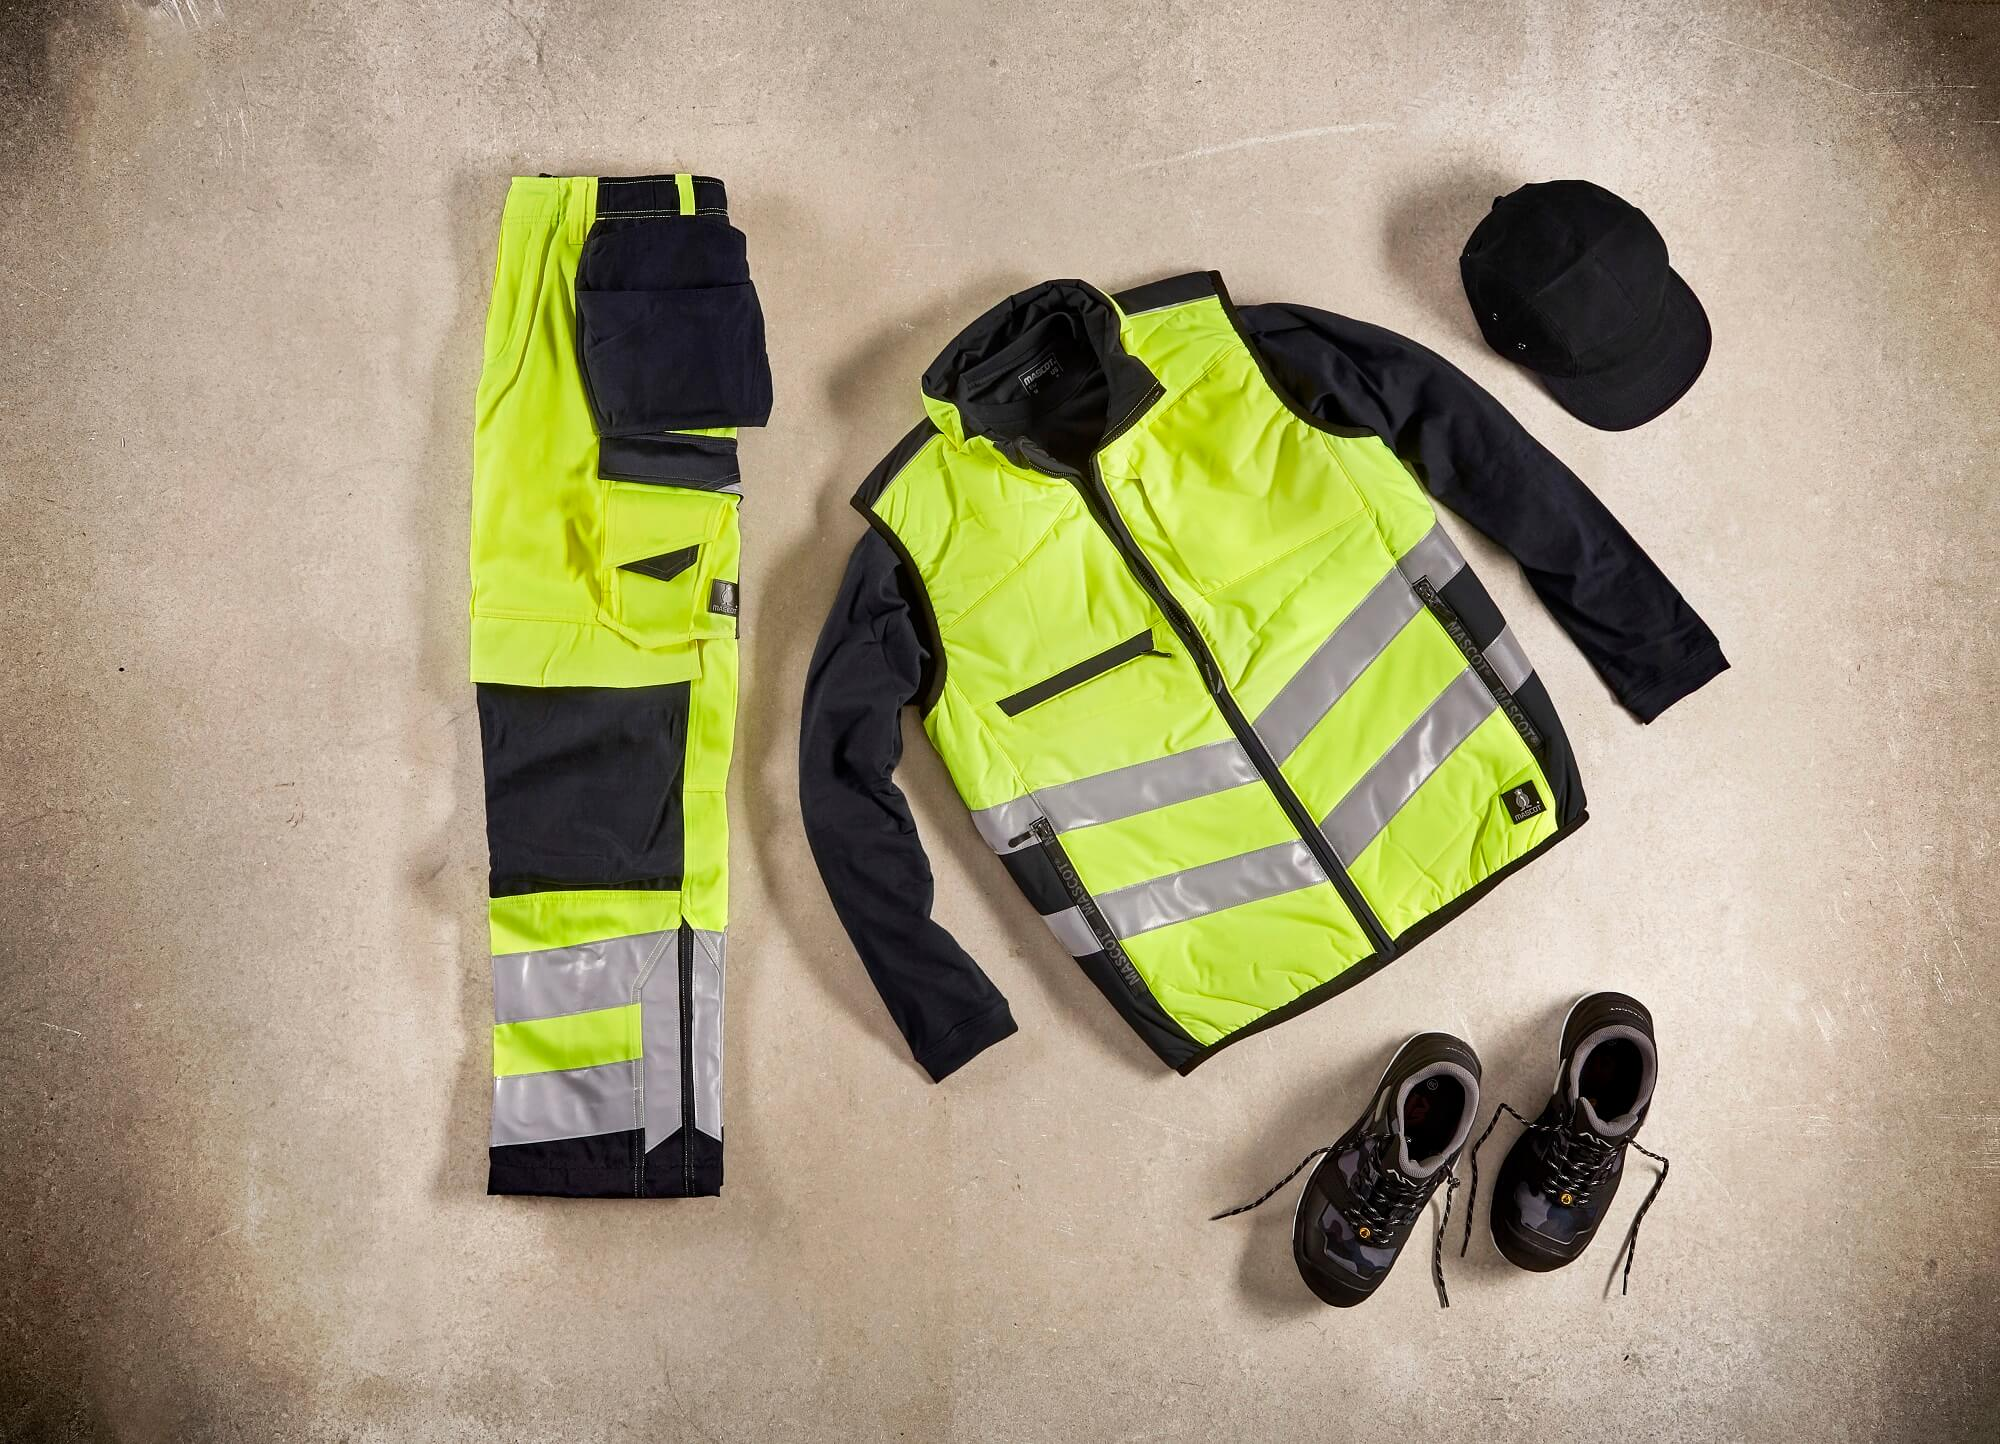 Traffic Vest & Trousers with kneepad pockets and holster pockets  - Fluorescent yellow - Collage